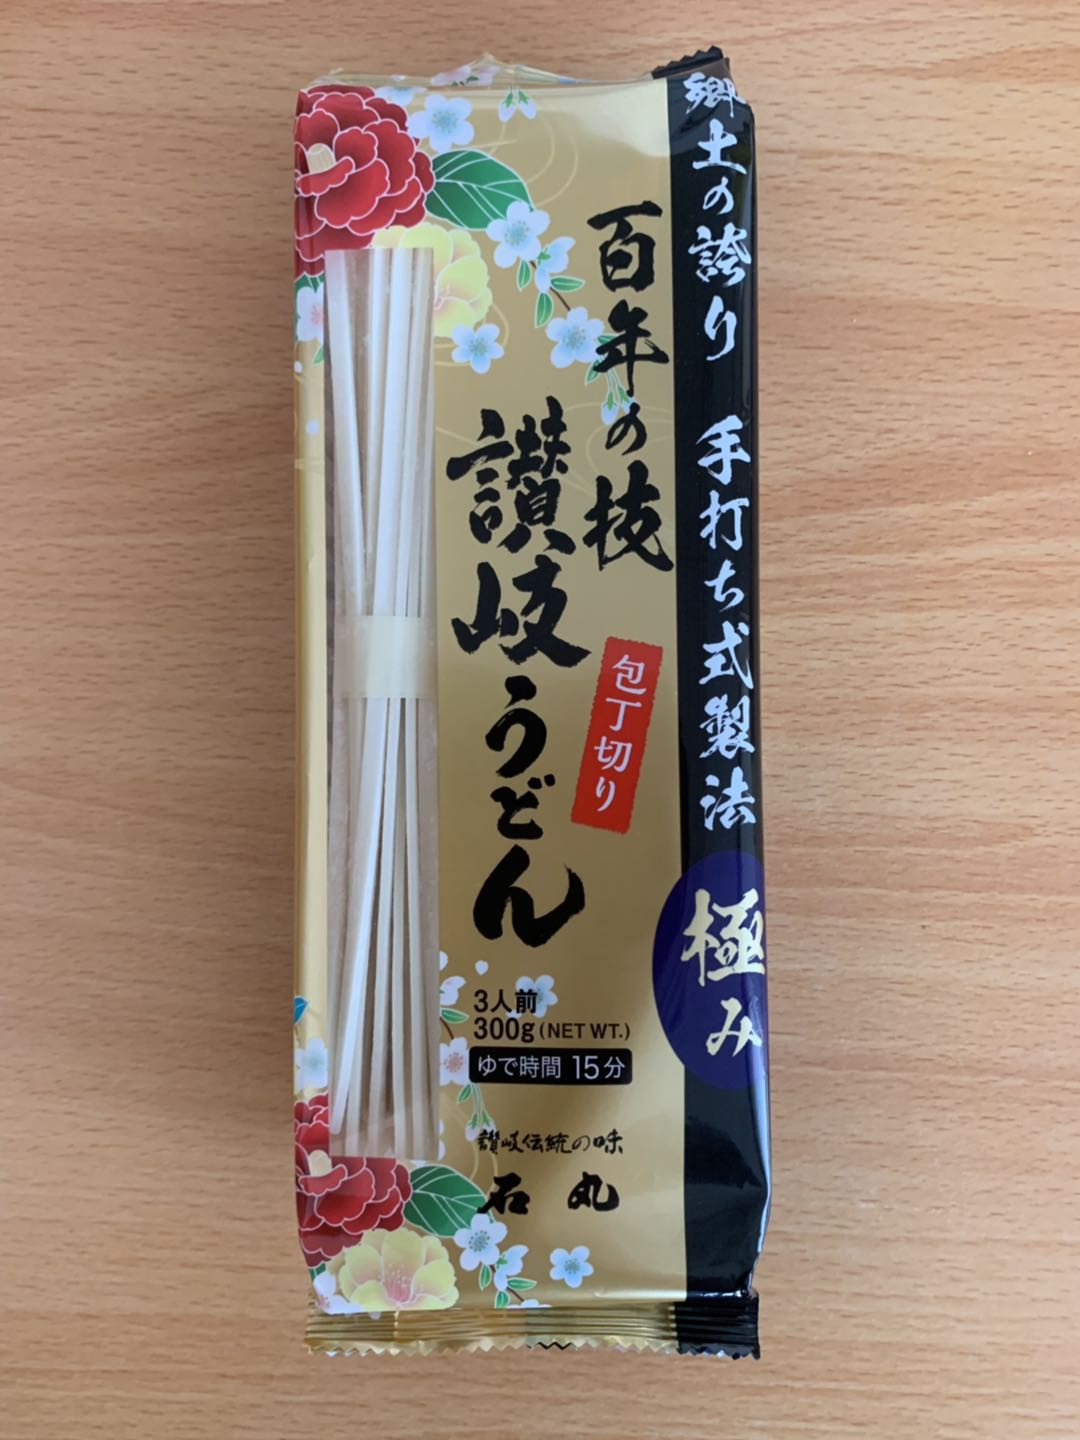 Japanese traditional noodles (handmade)